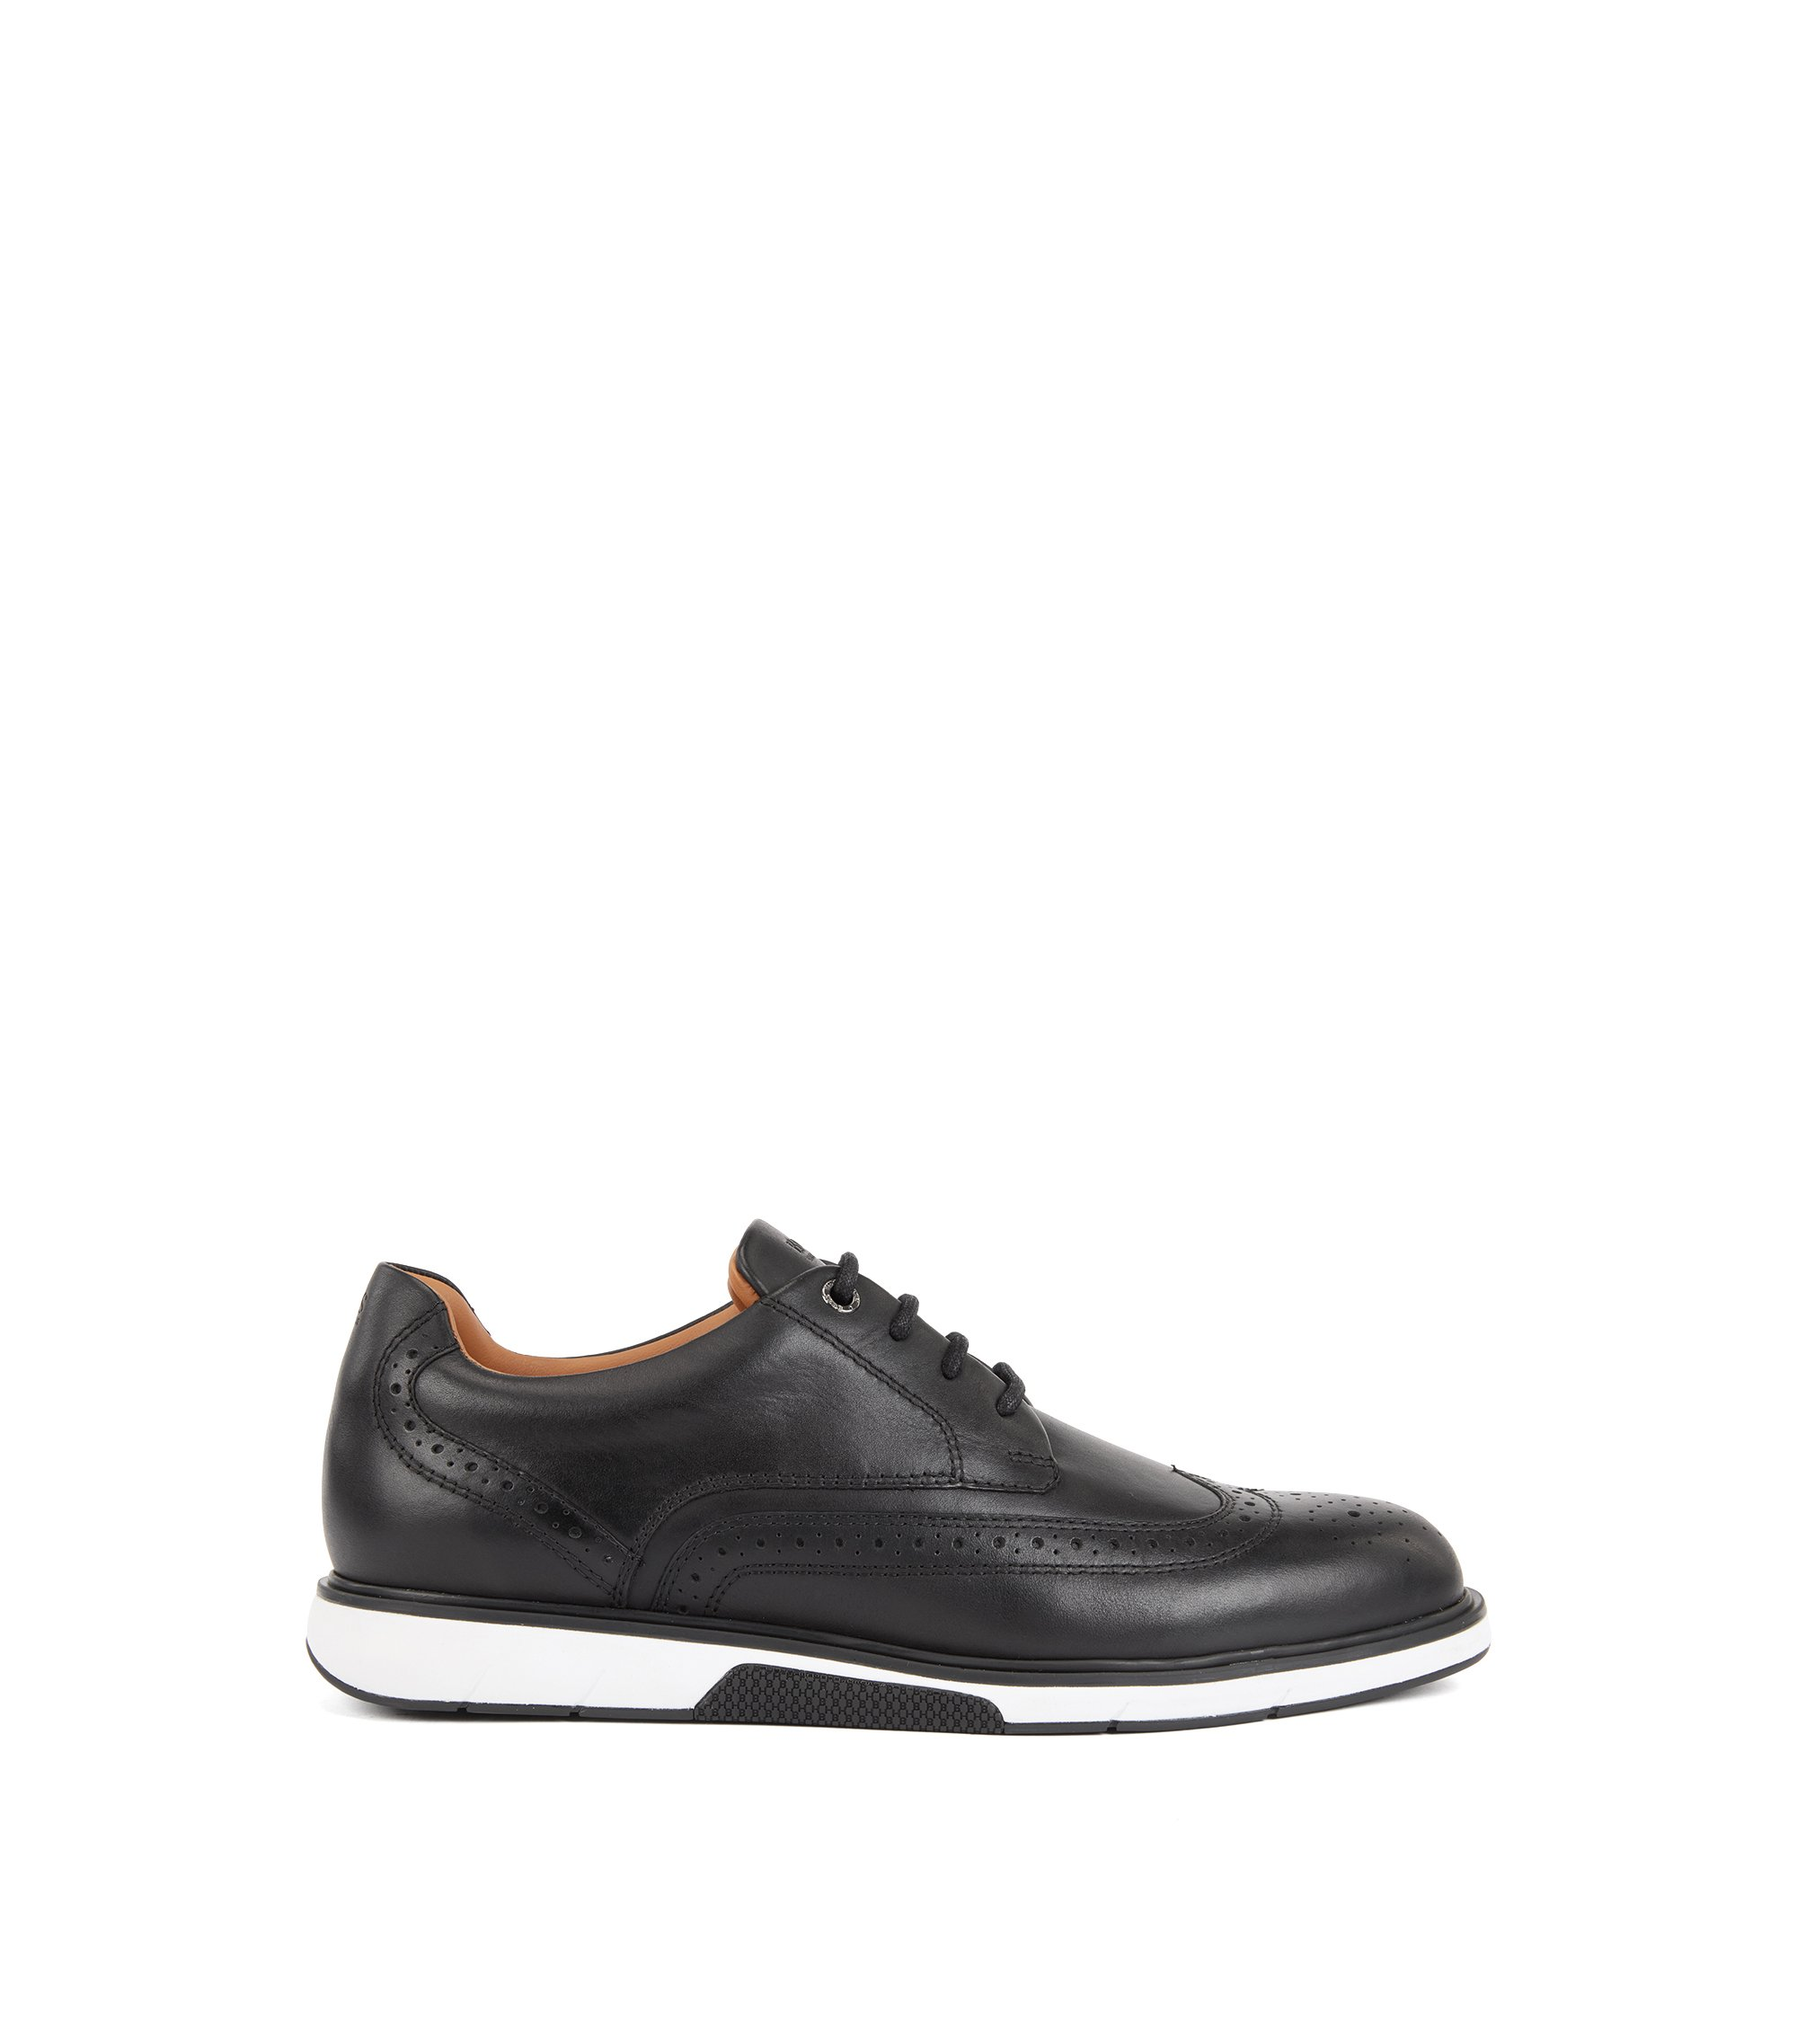 Leather Derby shoes with trainer-style sole, Zwart